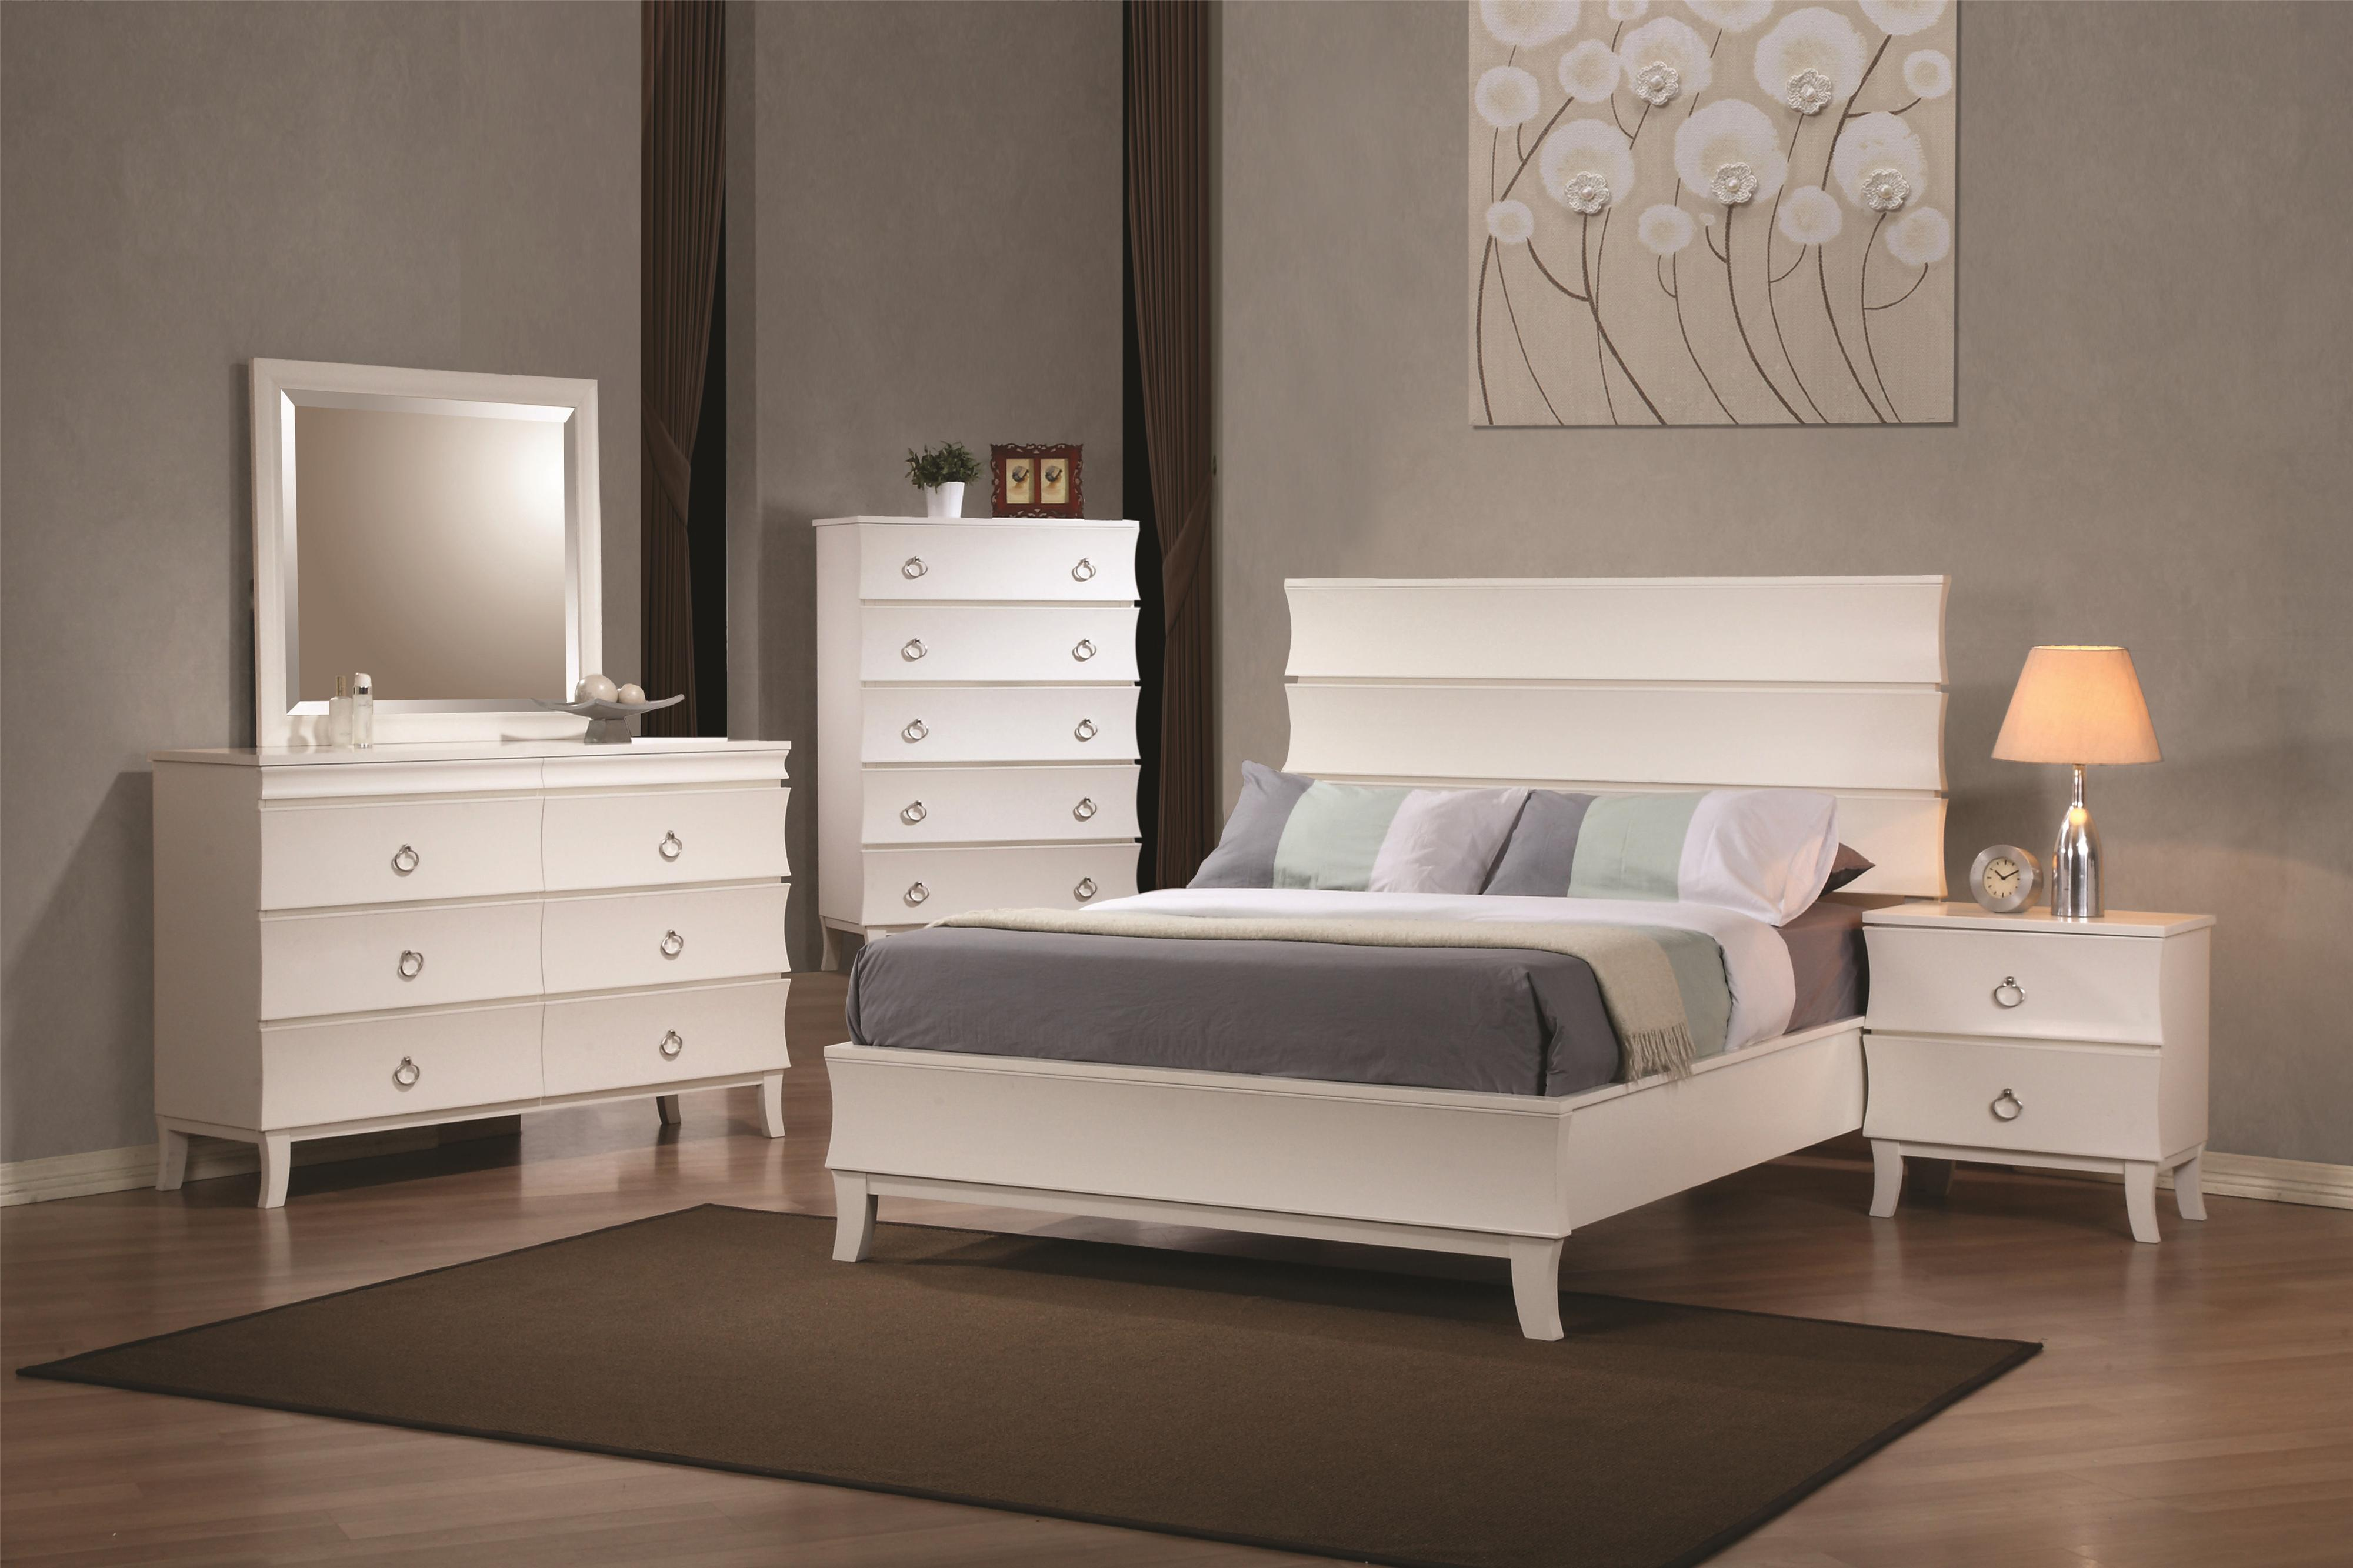 sets rooms clearance furniture queen of bedding within beds size full headboards go magnificent bedroom upholstered sears headboard